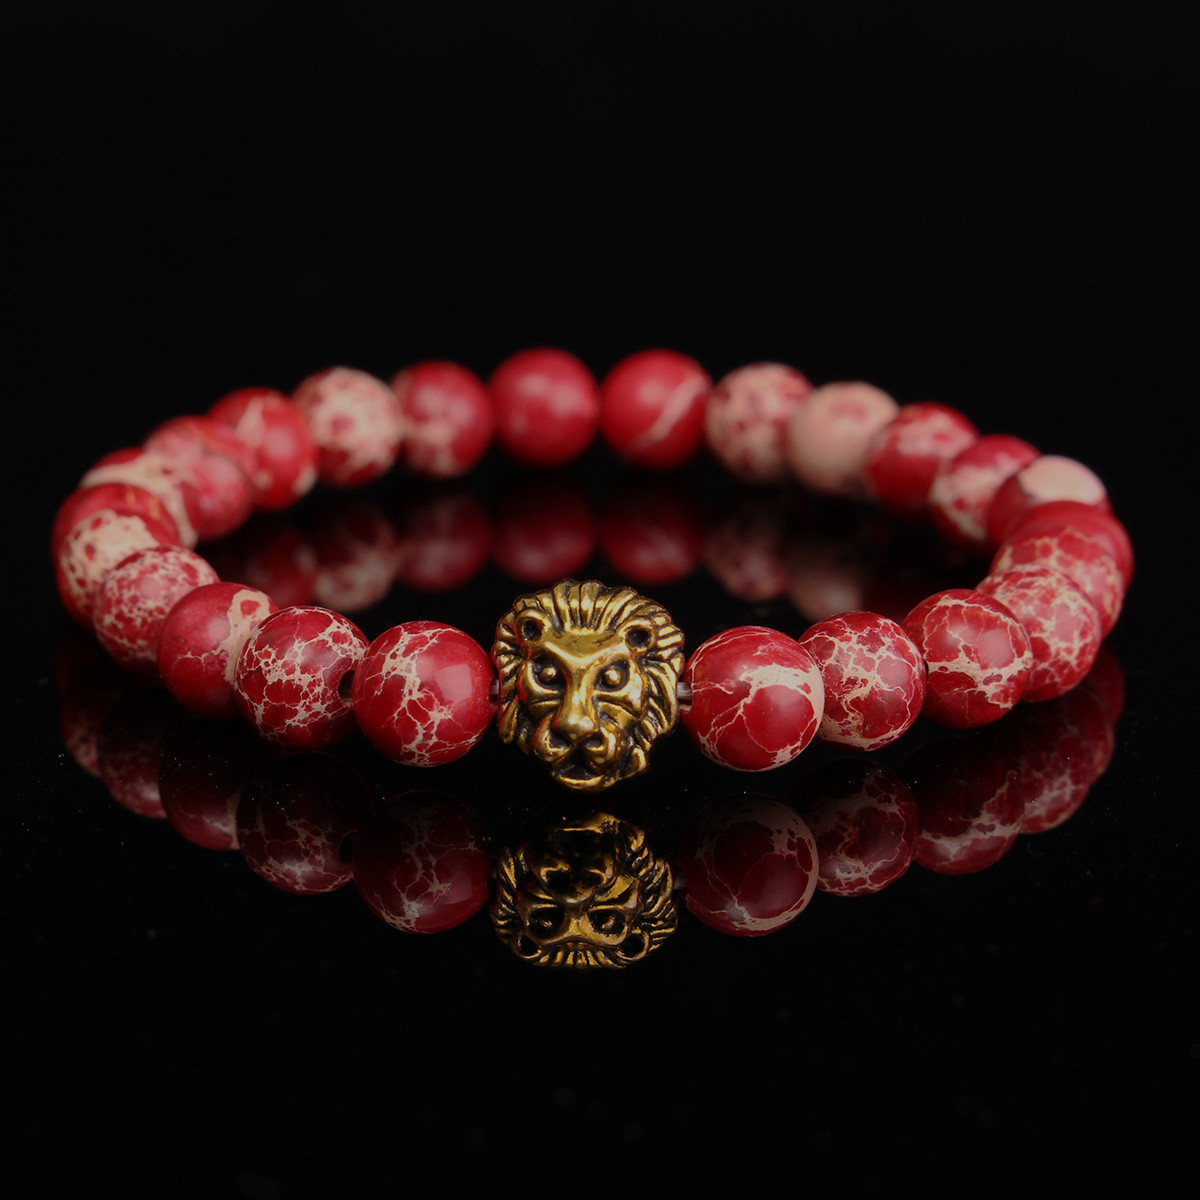 Red Sea Sediment Stone Lion Head Beads Bracelet Elastic Bangle Chain